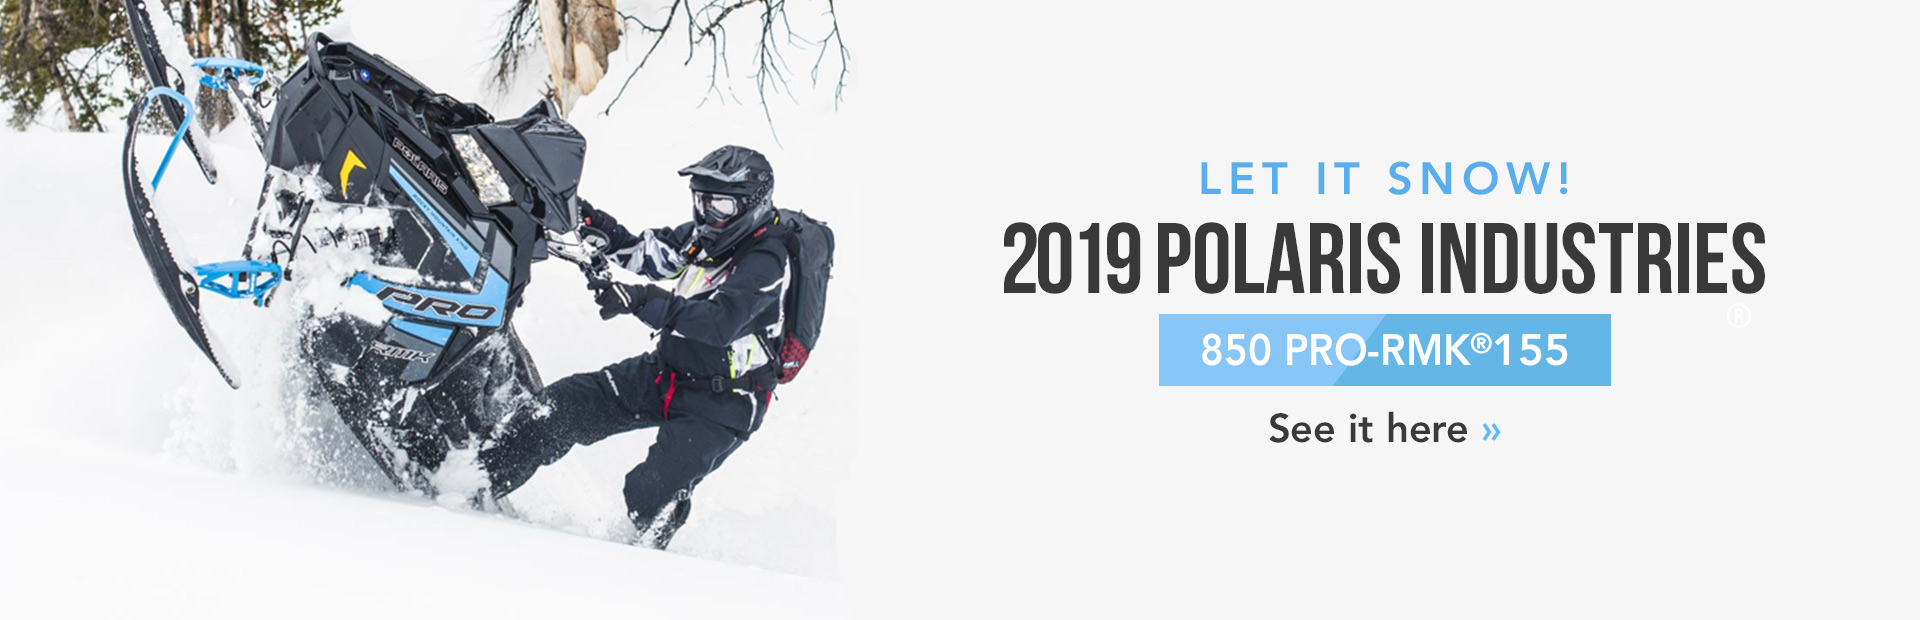 2019 Polaris Industries 850 PRO-RMK® 155: Click here to view the model.